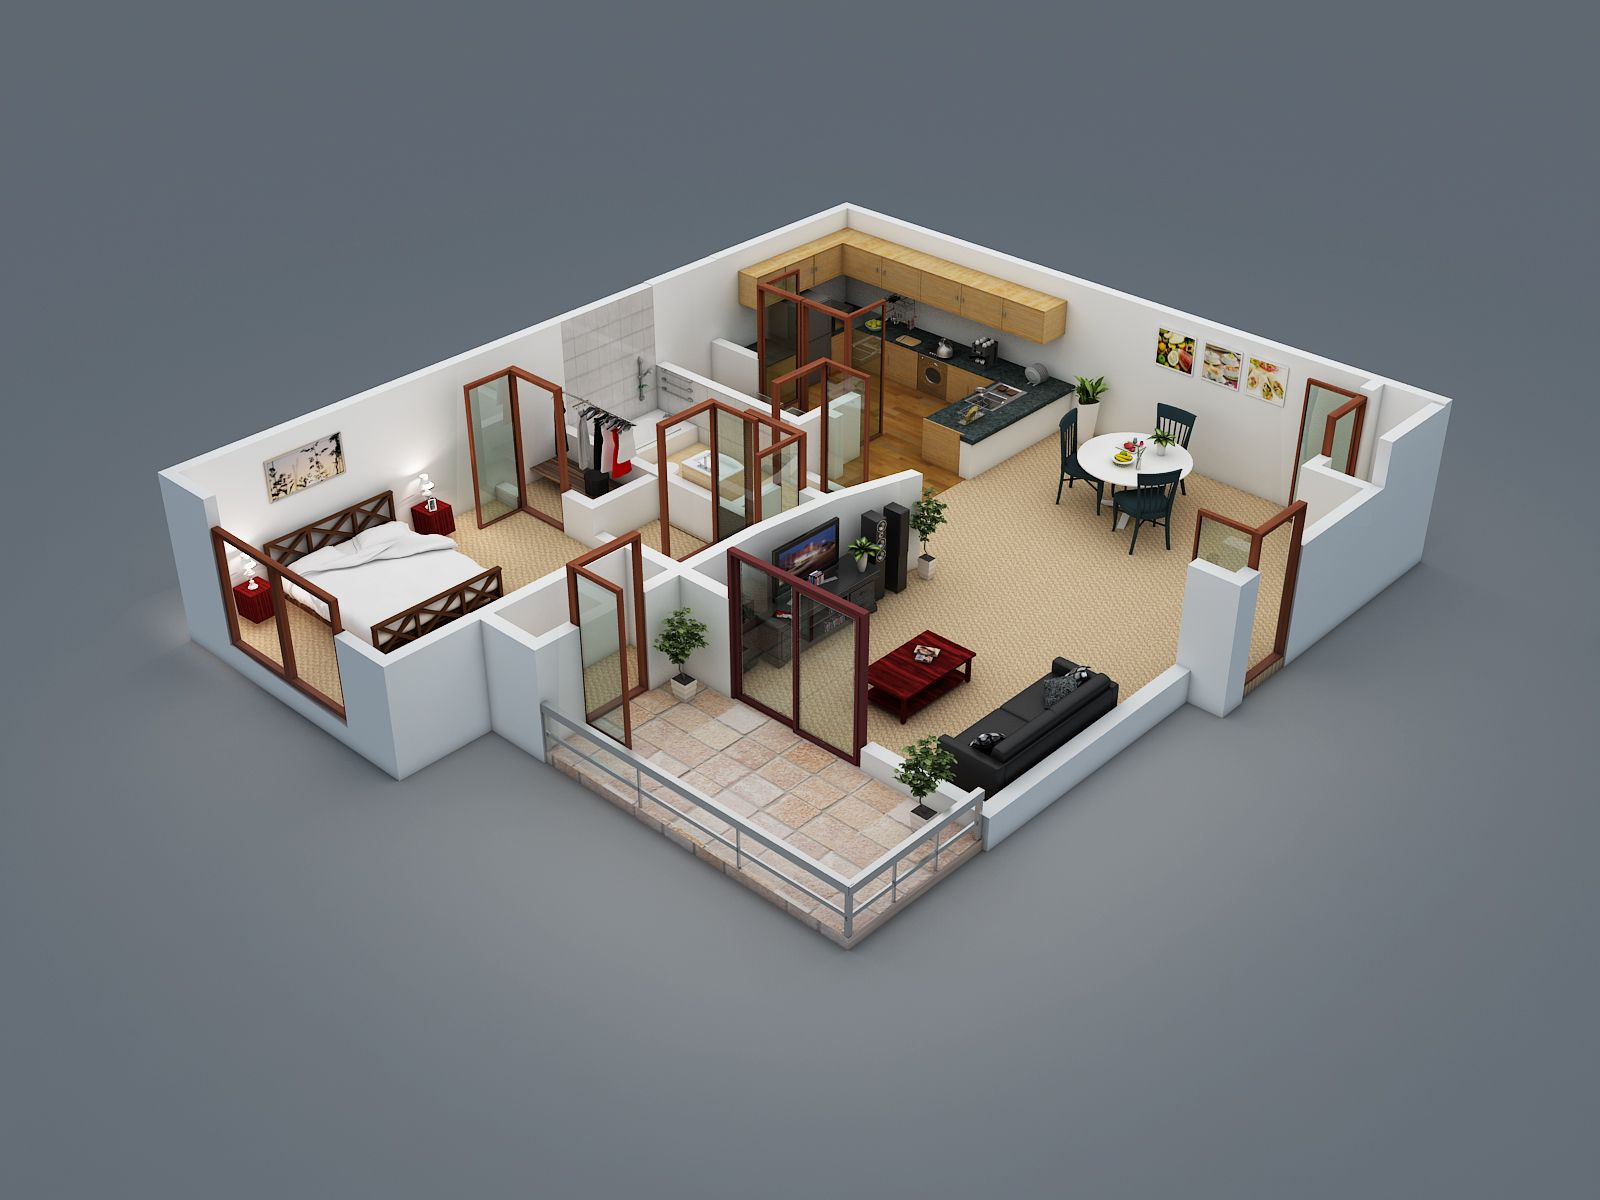 3d floor plan3d floor plans wazo communications luxury house plans 3d floor plan designs pinterest